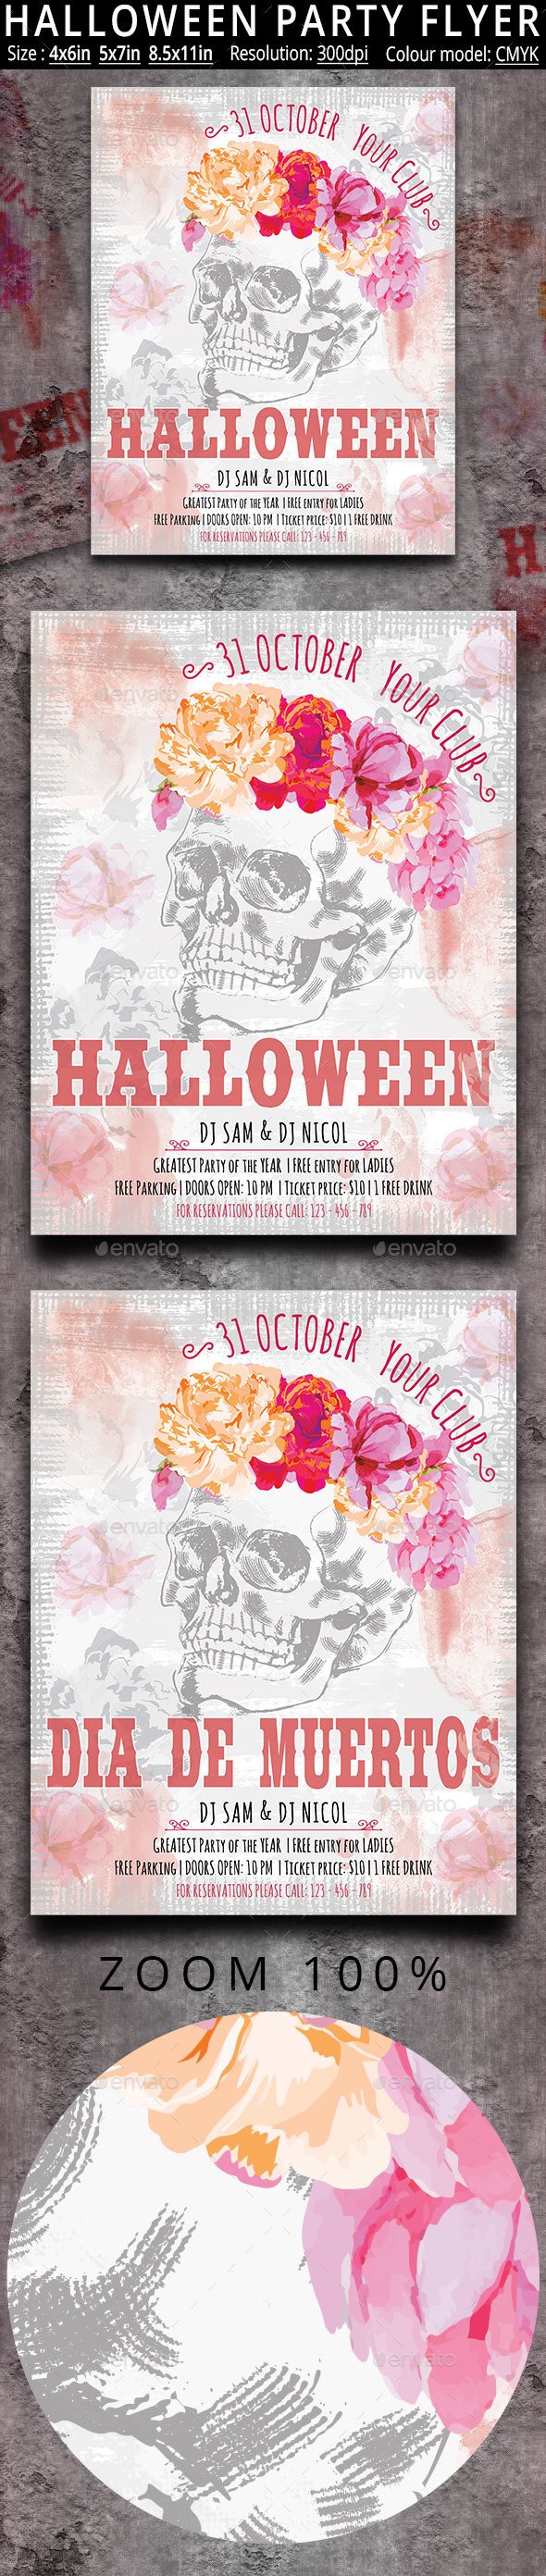 Halloween Flyer Party Flyer Poster